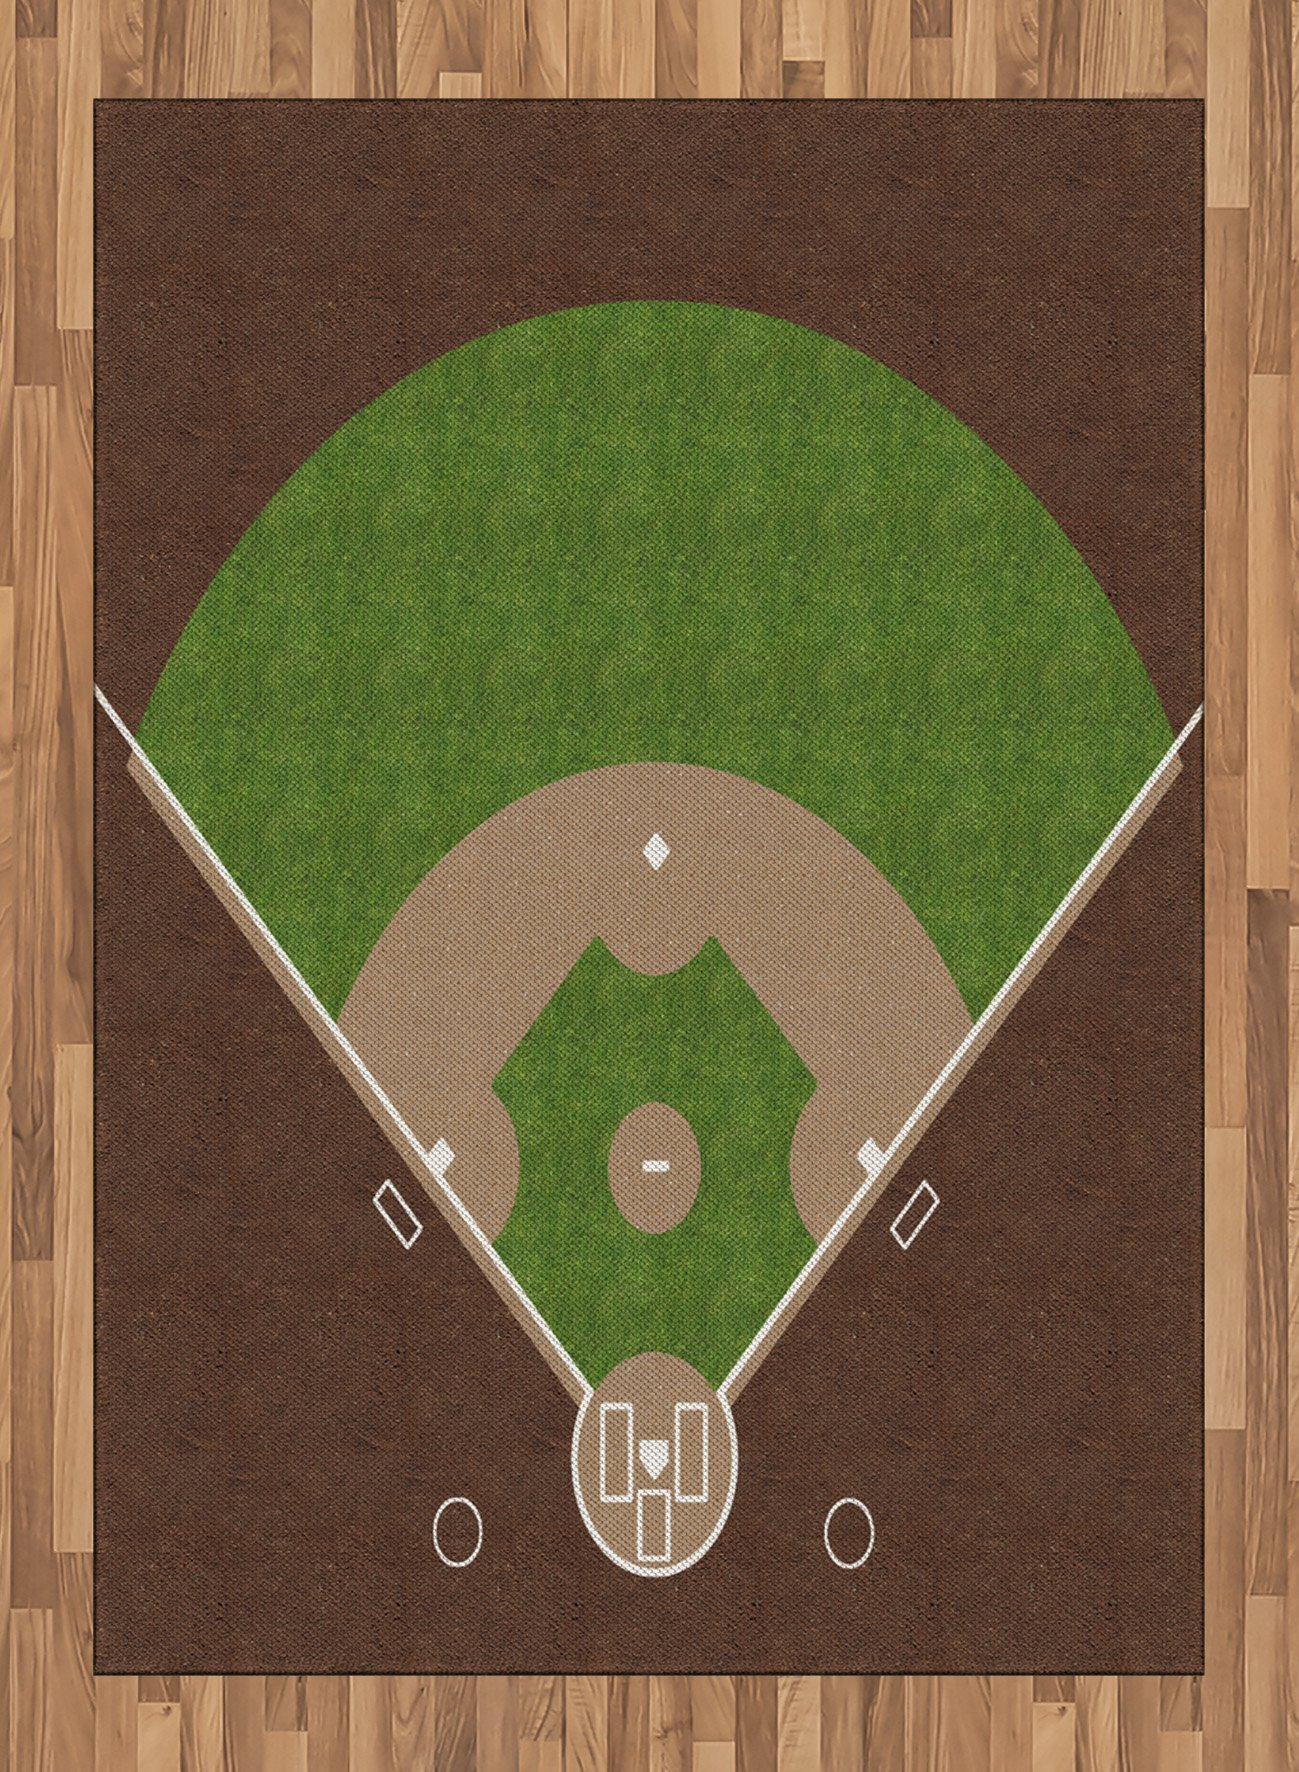 Boy's Room Area Rug by Lunarable, American Baseball Field with White Markings Painted on Grass Print, Flat Woven Accent Rug for Living Room Bedroom Dining Room, 5.2 x 7.5 FT, Lime Green Chocolate Tan